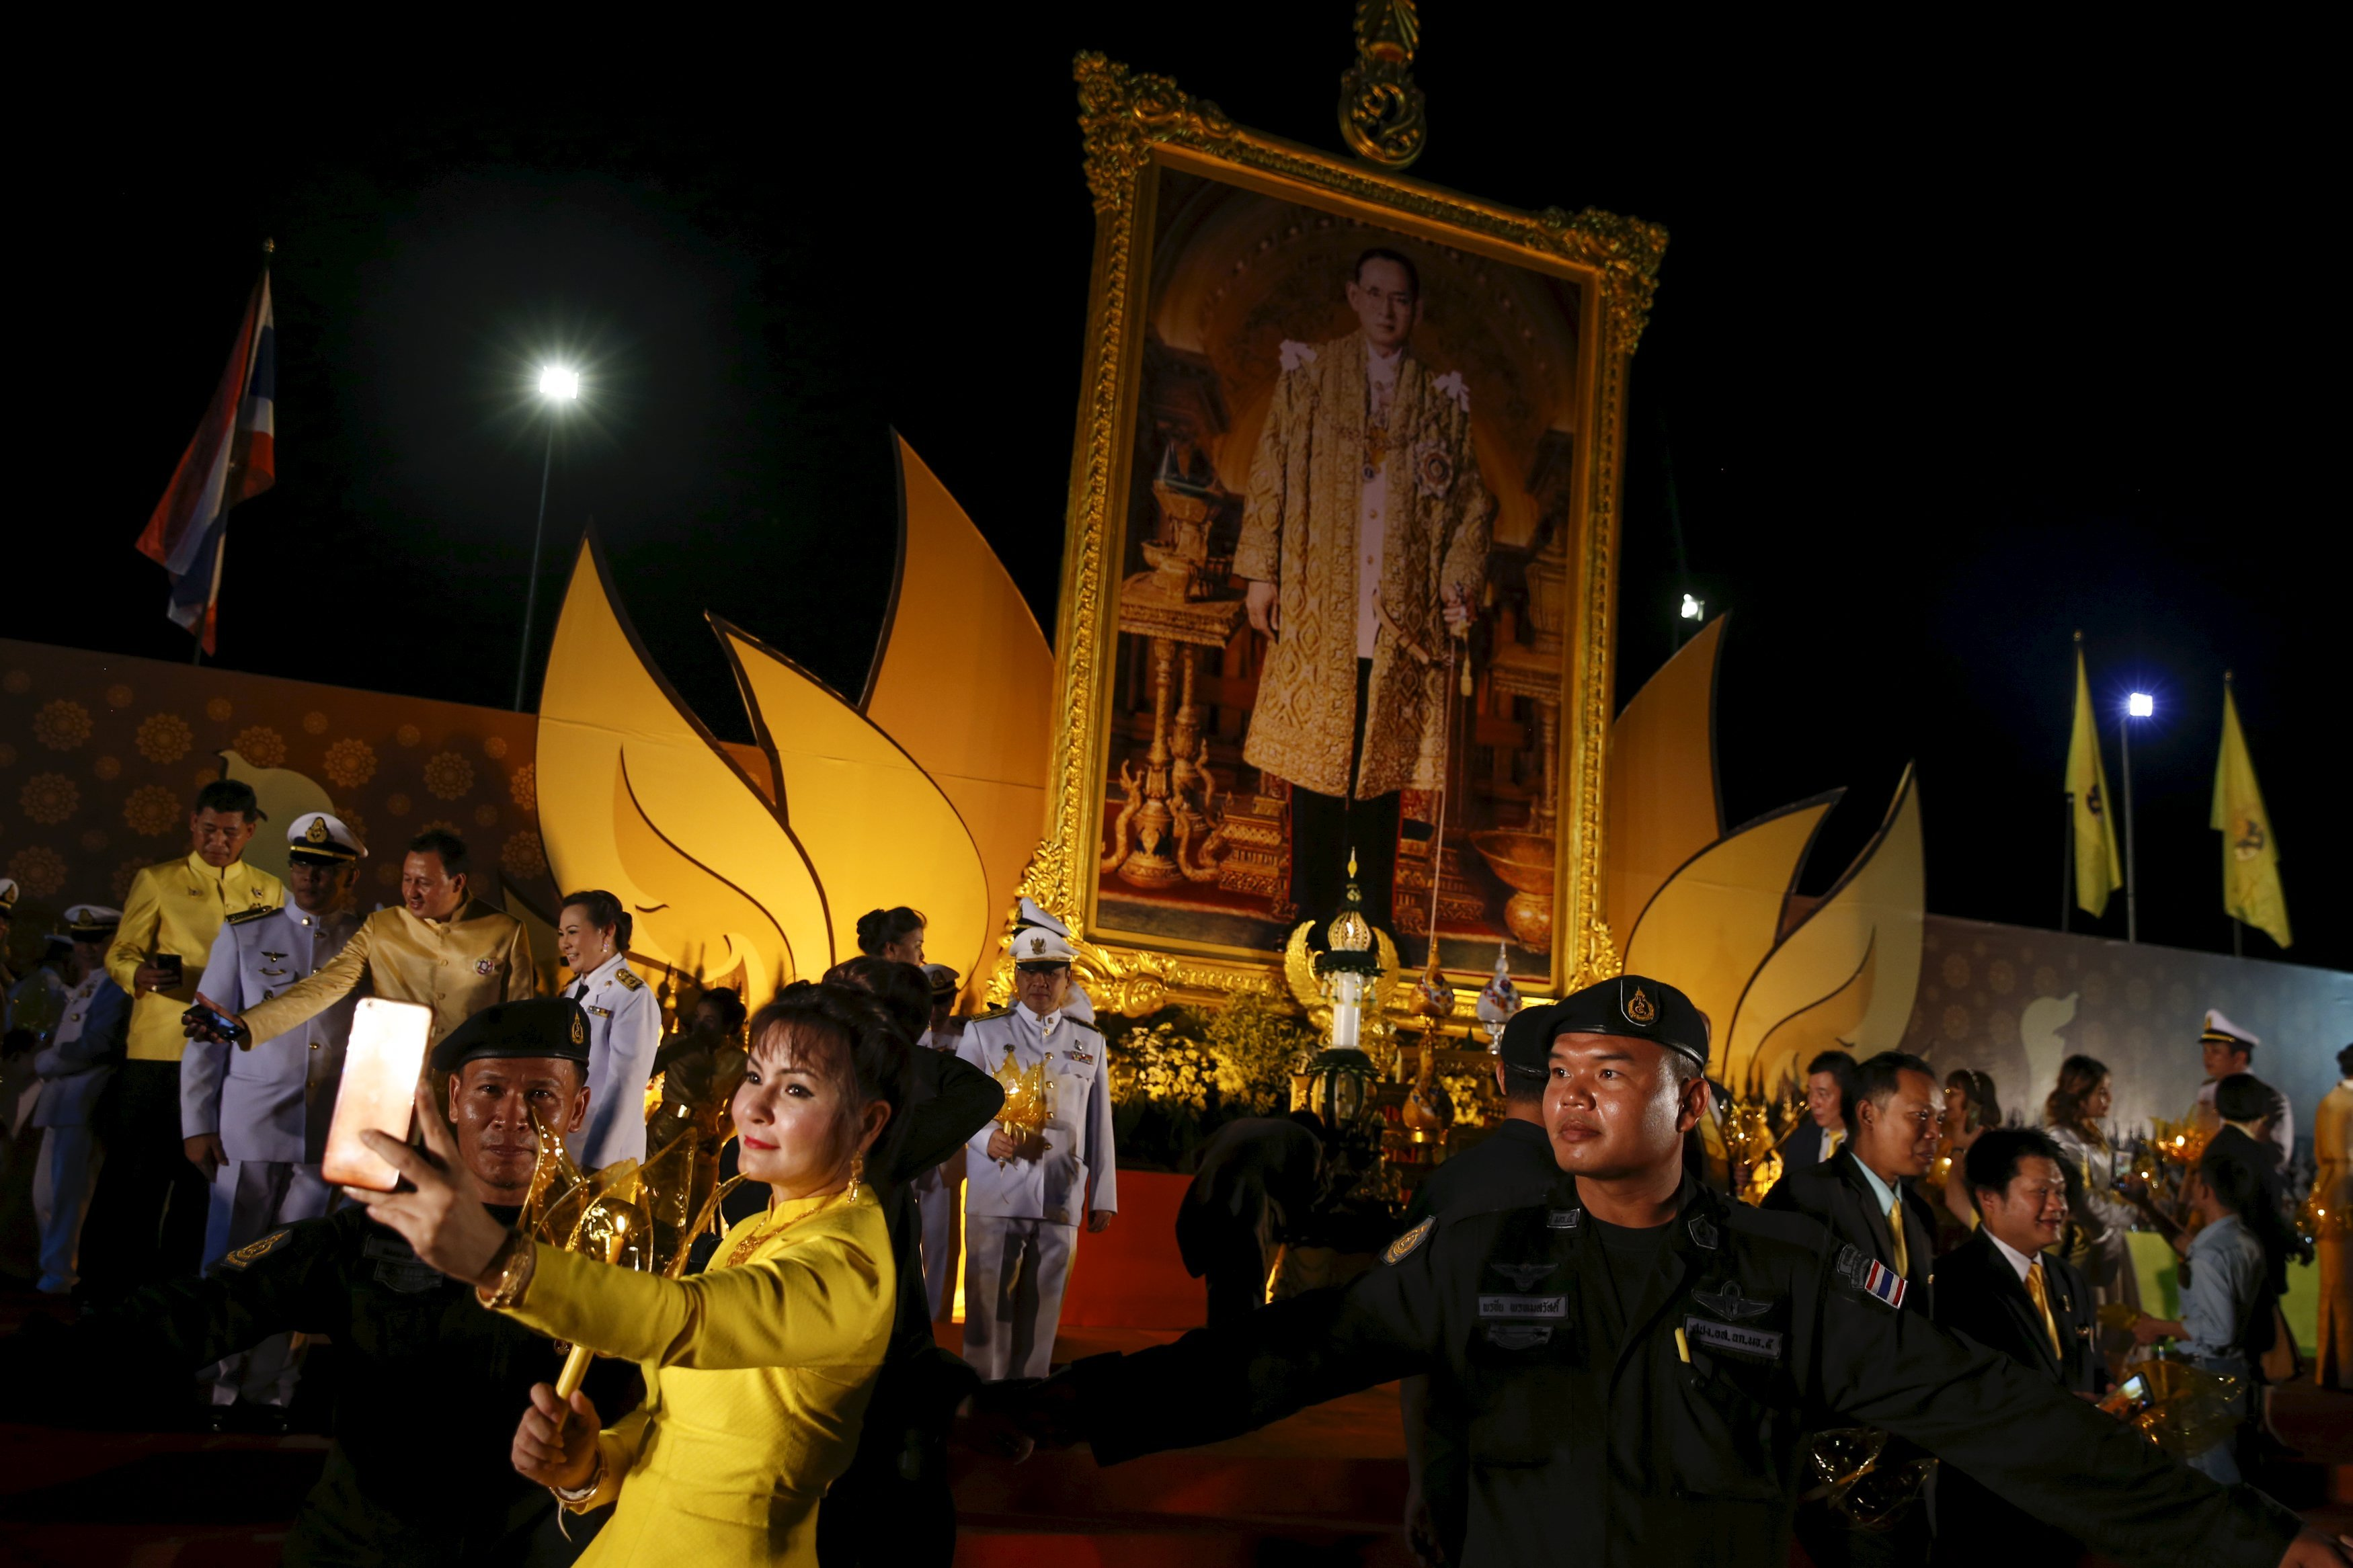 Army officials and guests pose after attending the official ceremony to celebrate Thailand's King Bhumibol Adulyadej 88th birthday in Bangkok, on Dec. 5, 2015.